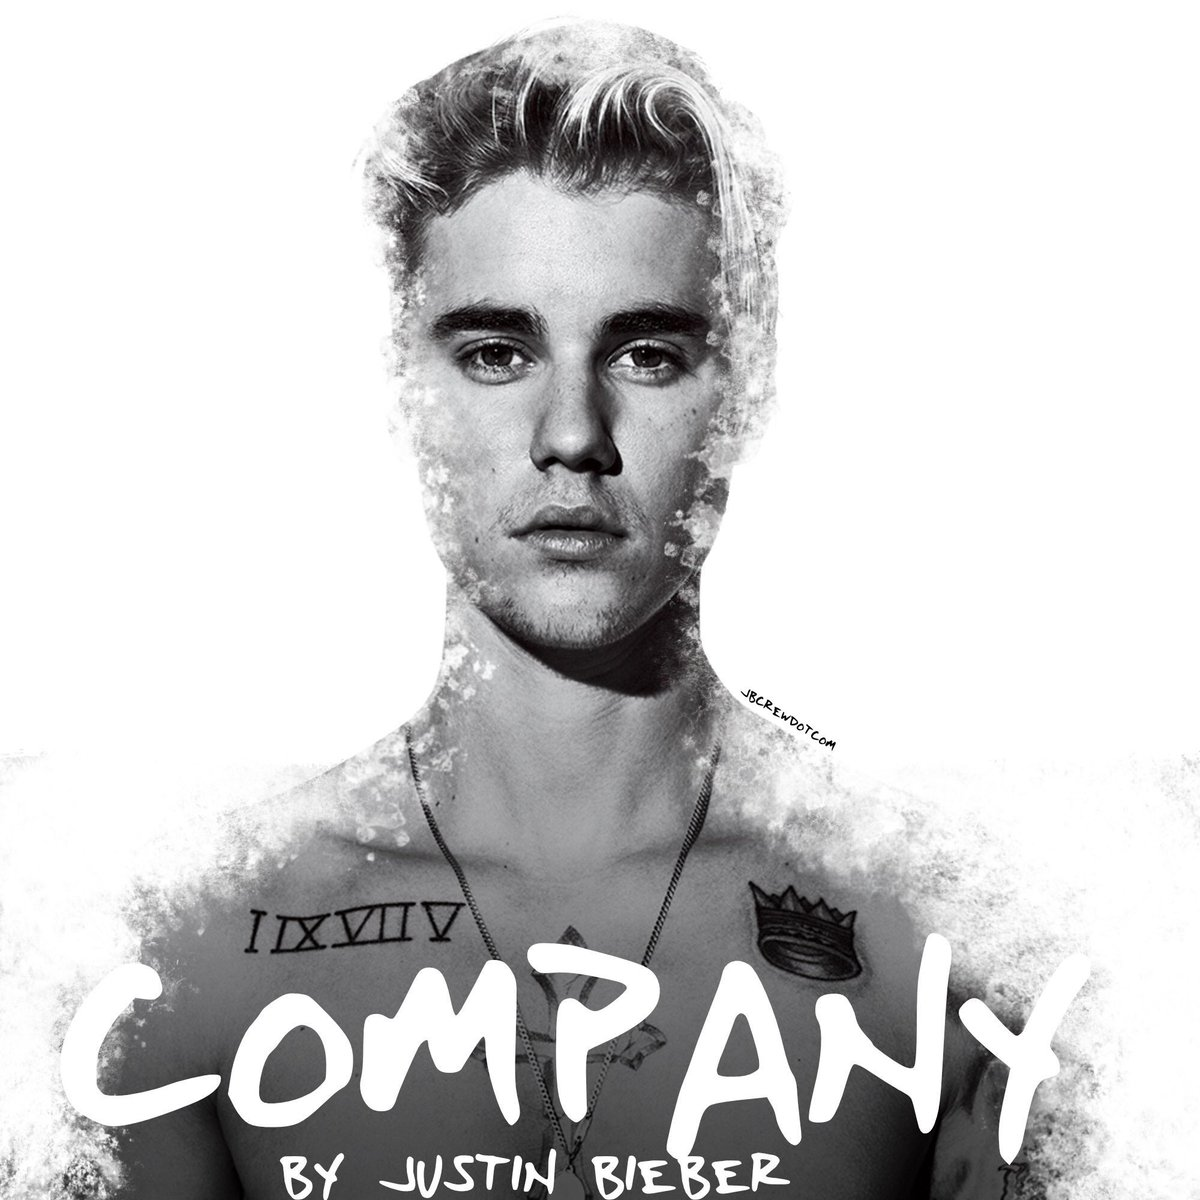 """#JacaTop20 NEW ENTRY   Today we welcome @justinbieber onto with chart with """"Company"""" at No.18 https://t.co/3tIuqd05Gk"""